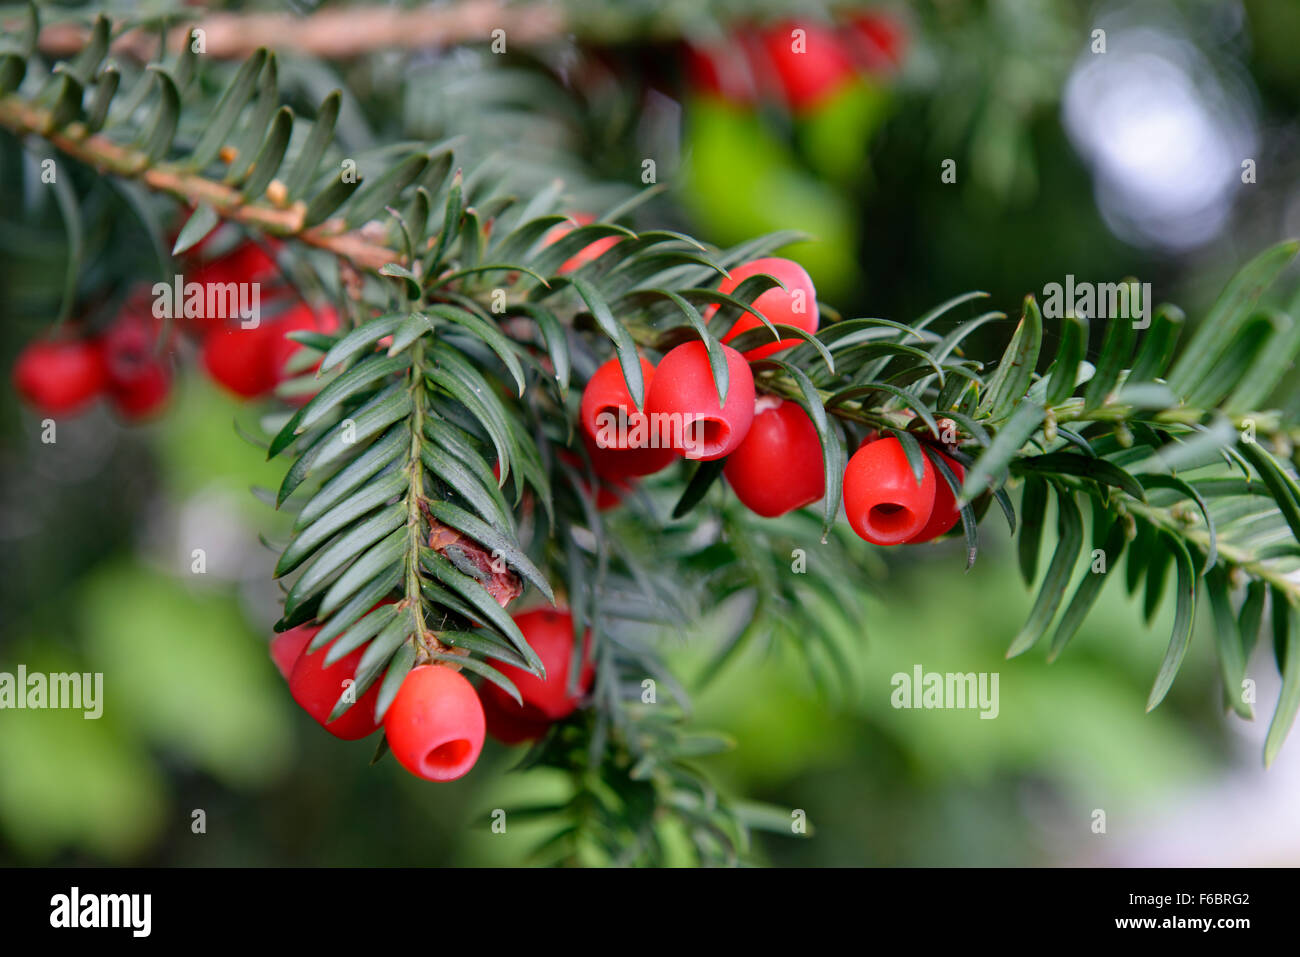 English yew or European yew (Taxus baccata) with red berries, Germany - Stock Image